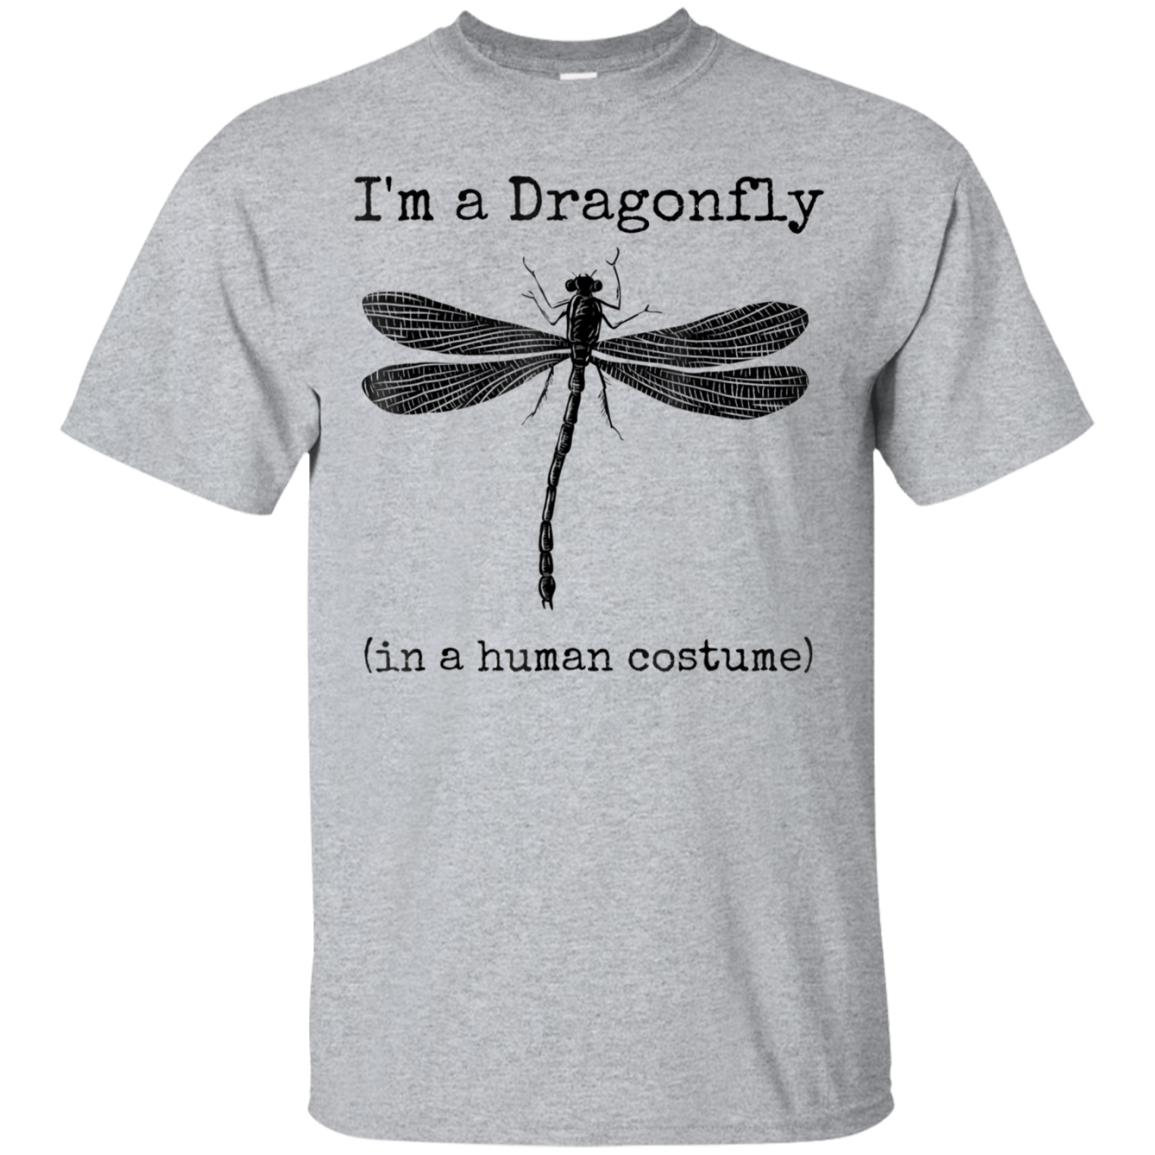 I'm a Dragonfly in a Human Costume Funny Dragonflies Shirt 99promocode